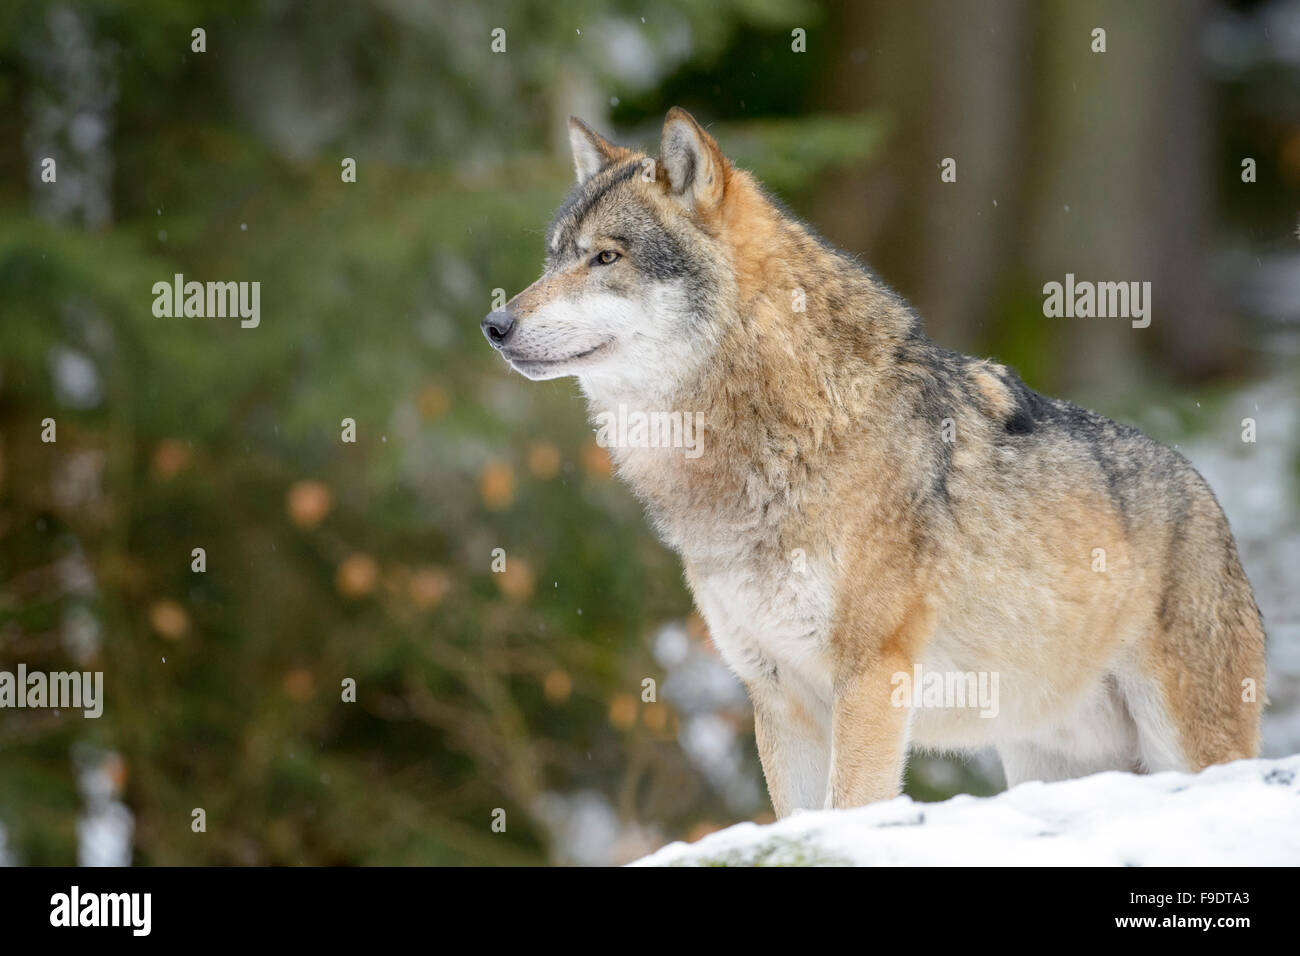 Adult Eurasian wolf (Canis lupus lupus) looking up and standing in the snow, Bayerische wald, Germany Stock Photo